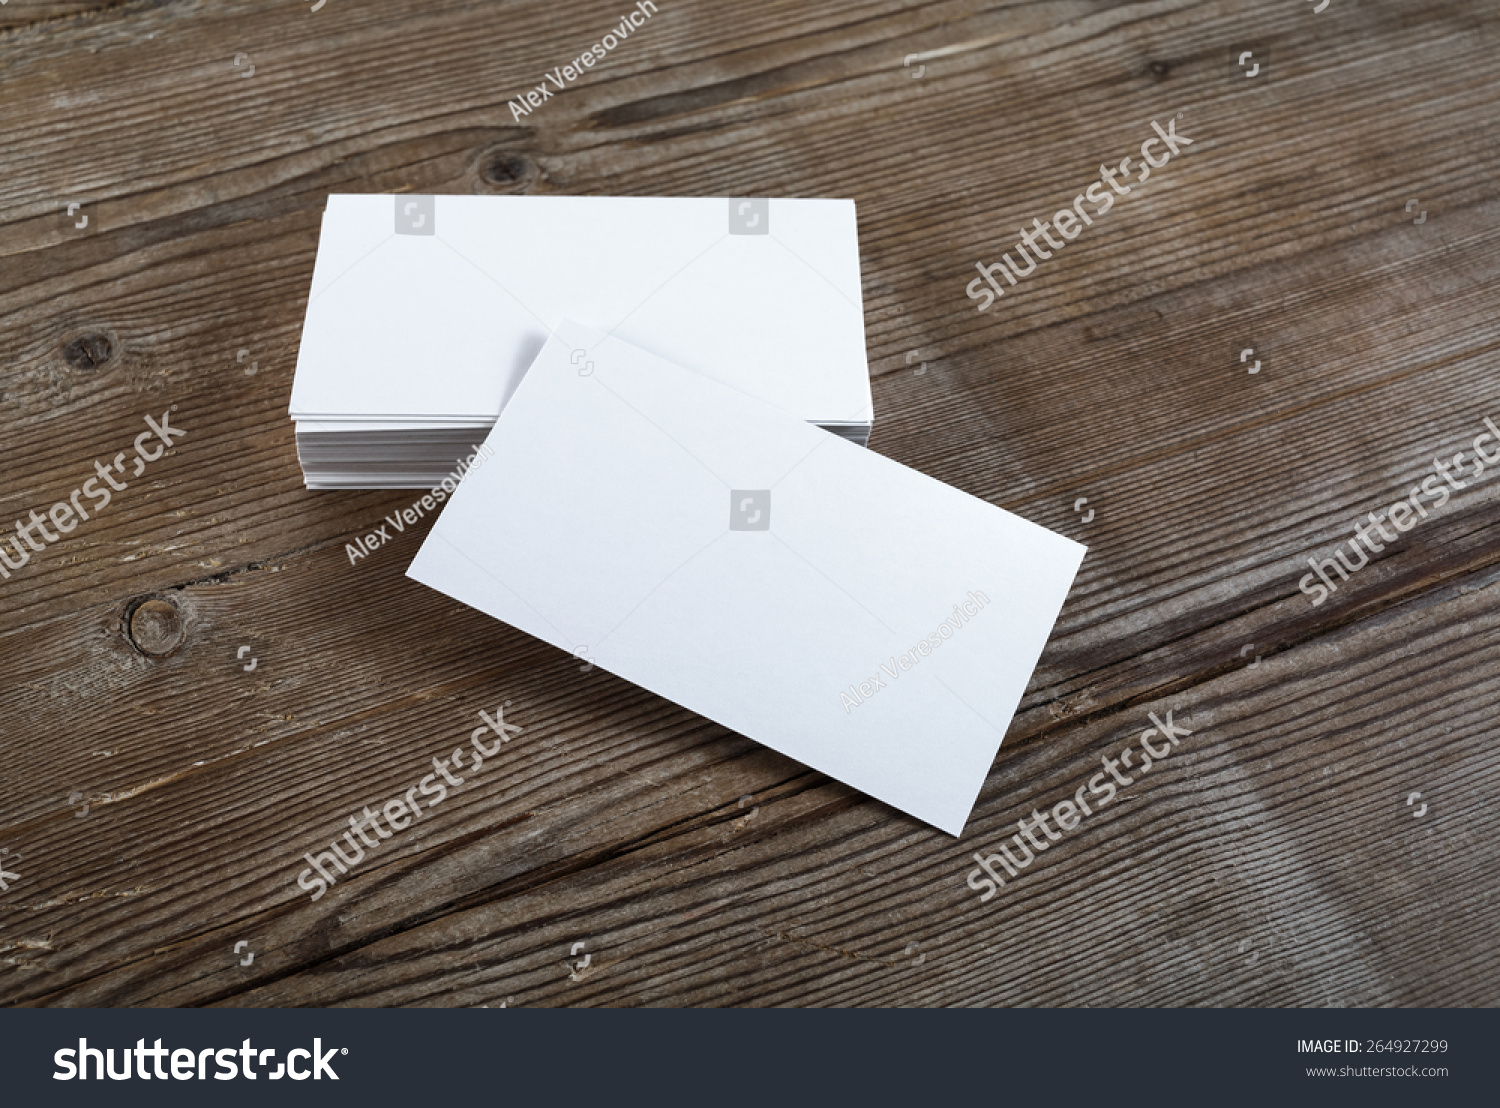 blank business card stock - North.fourthwall.co